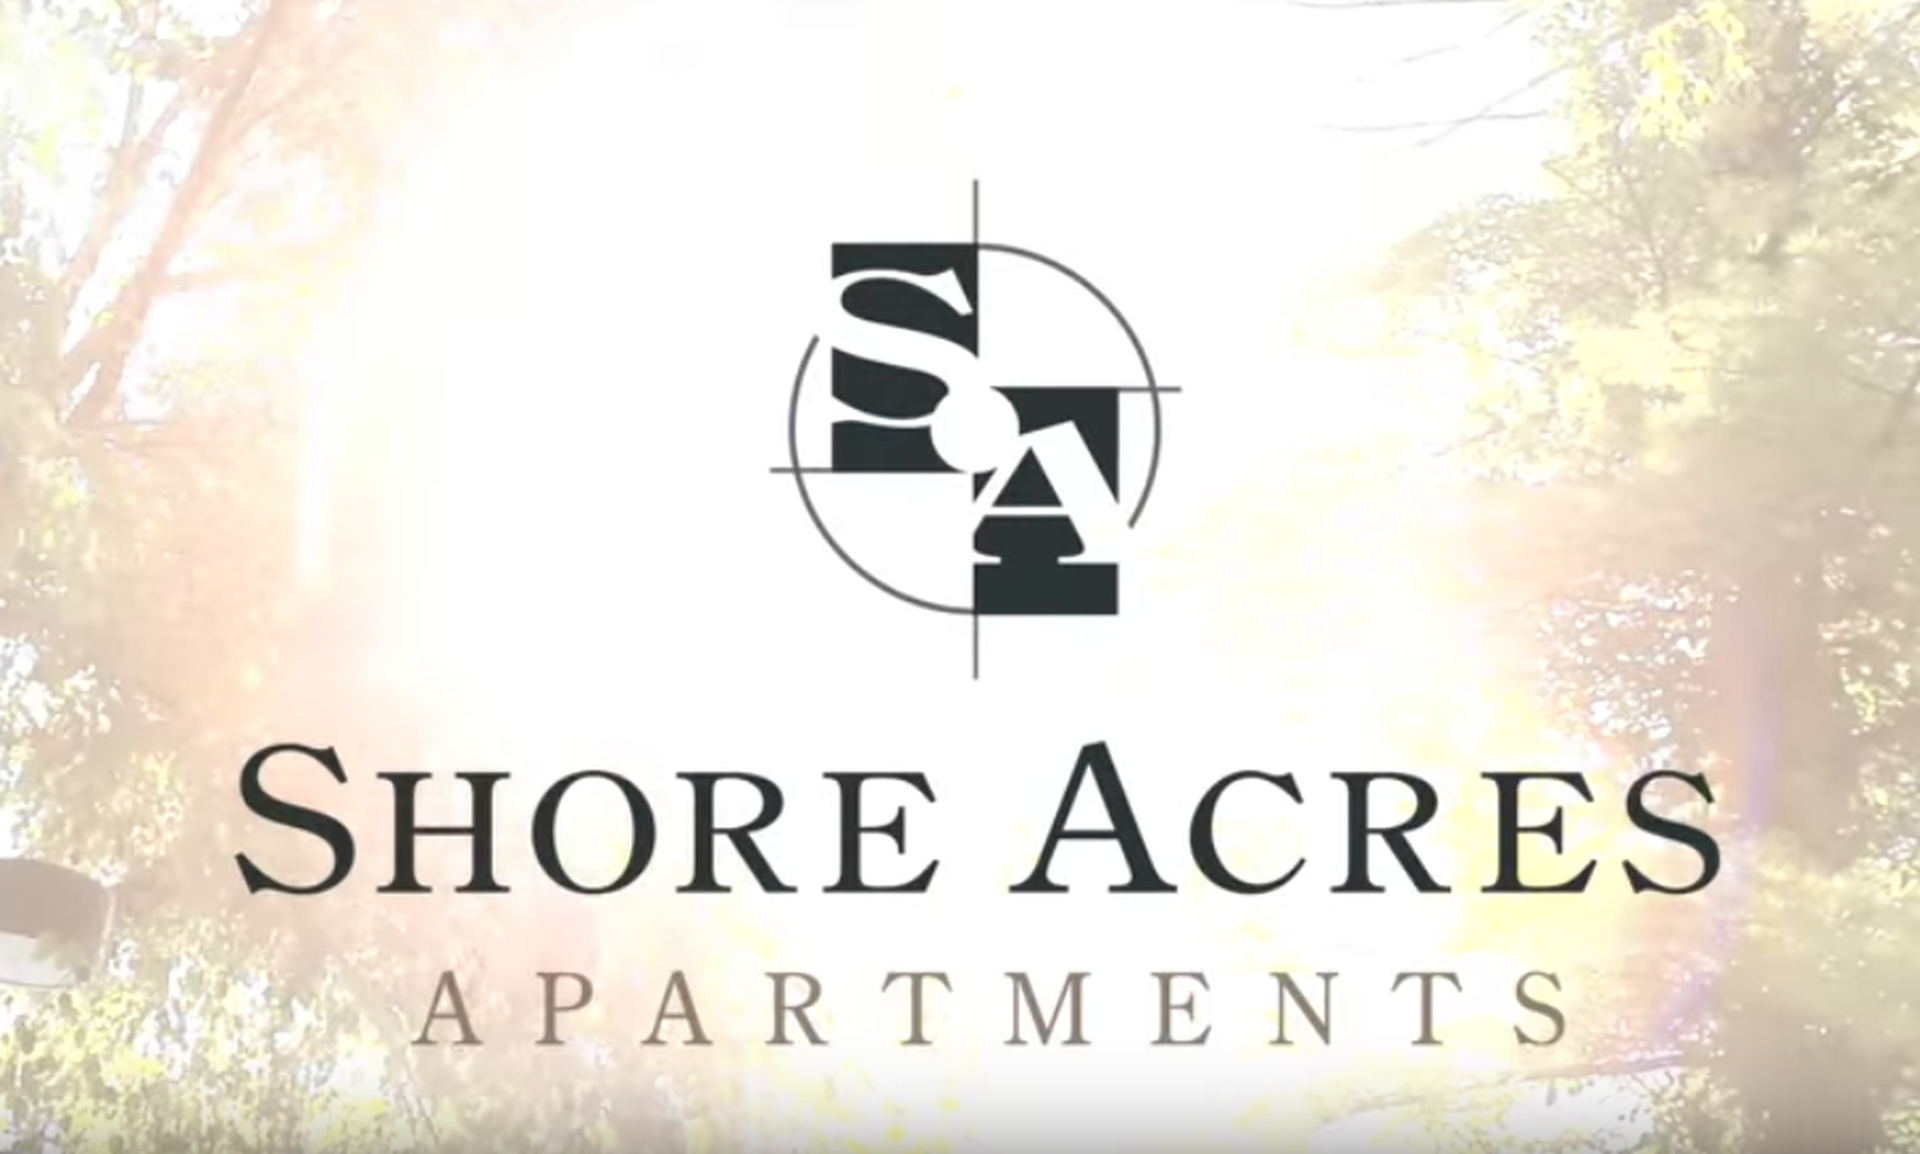 Property Video for Shore Acres